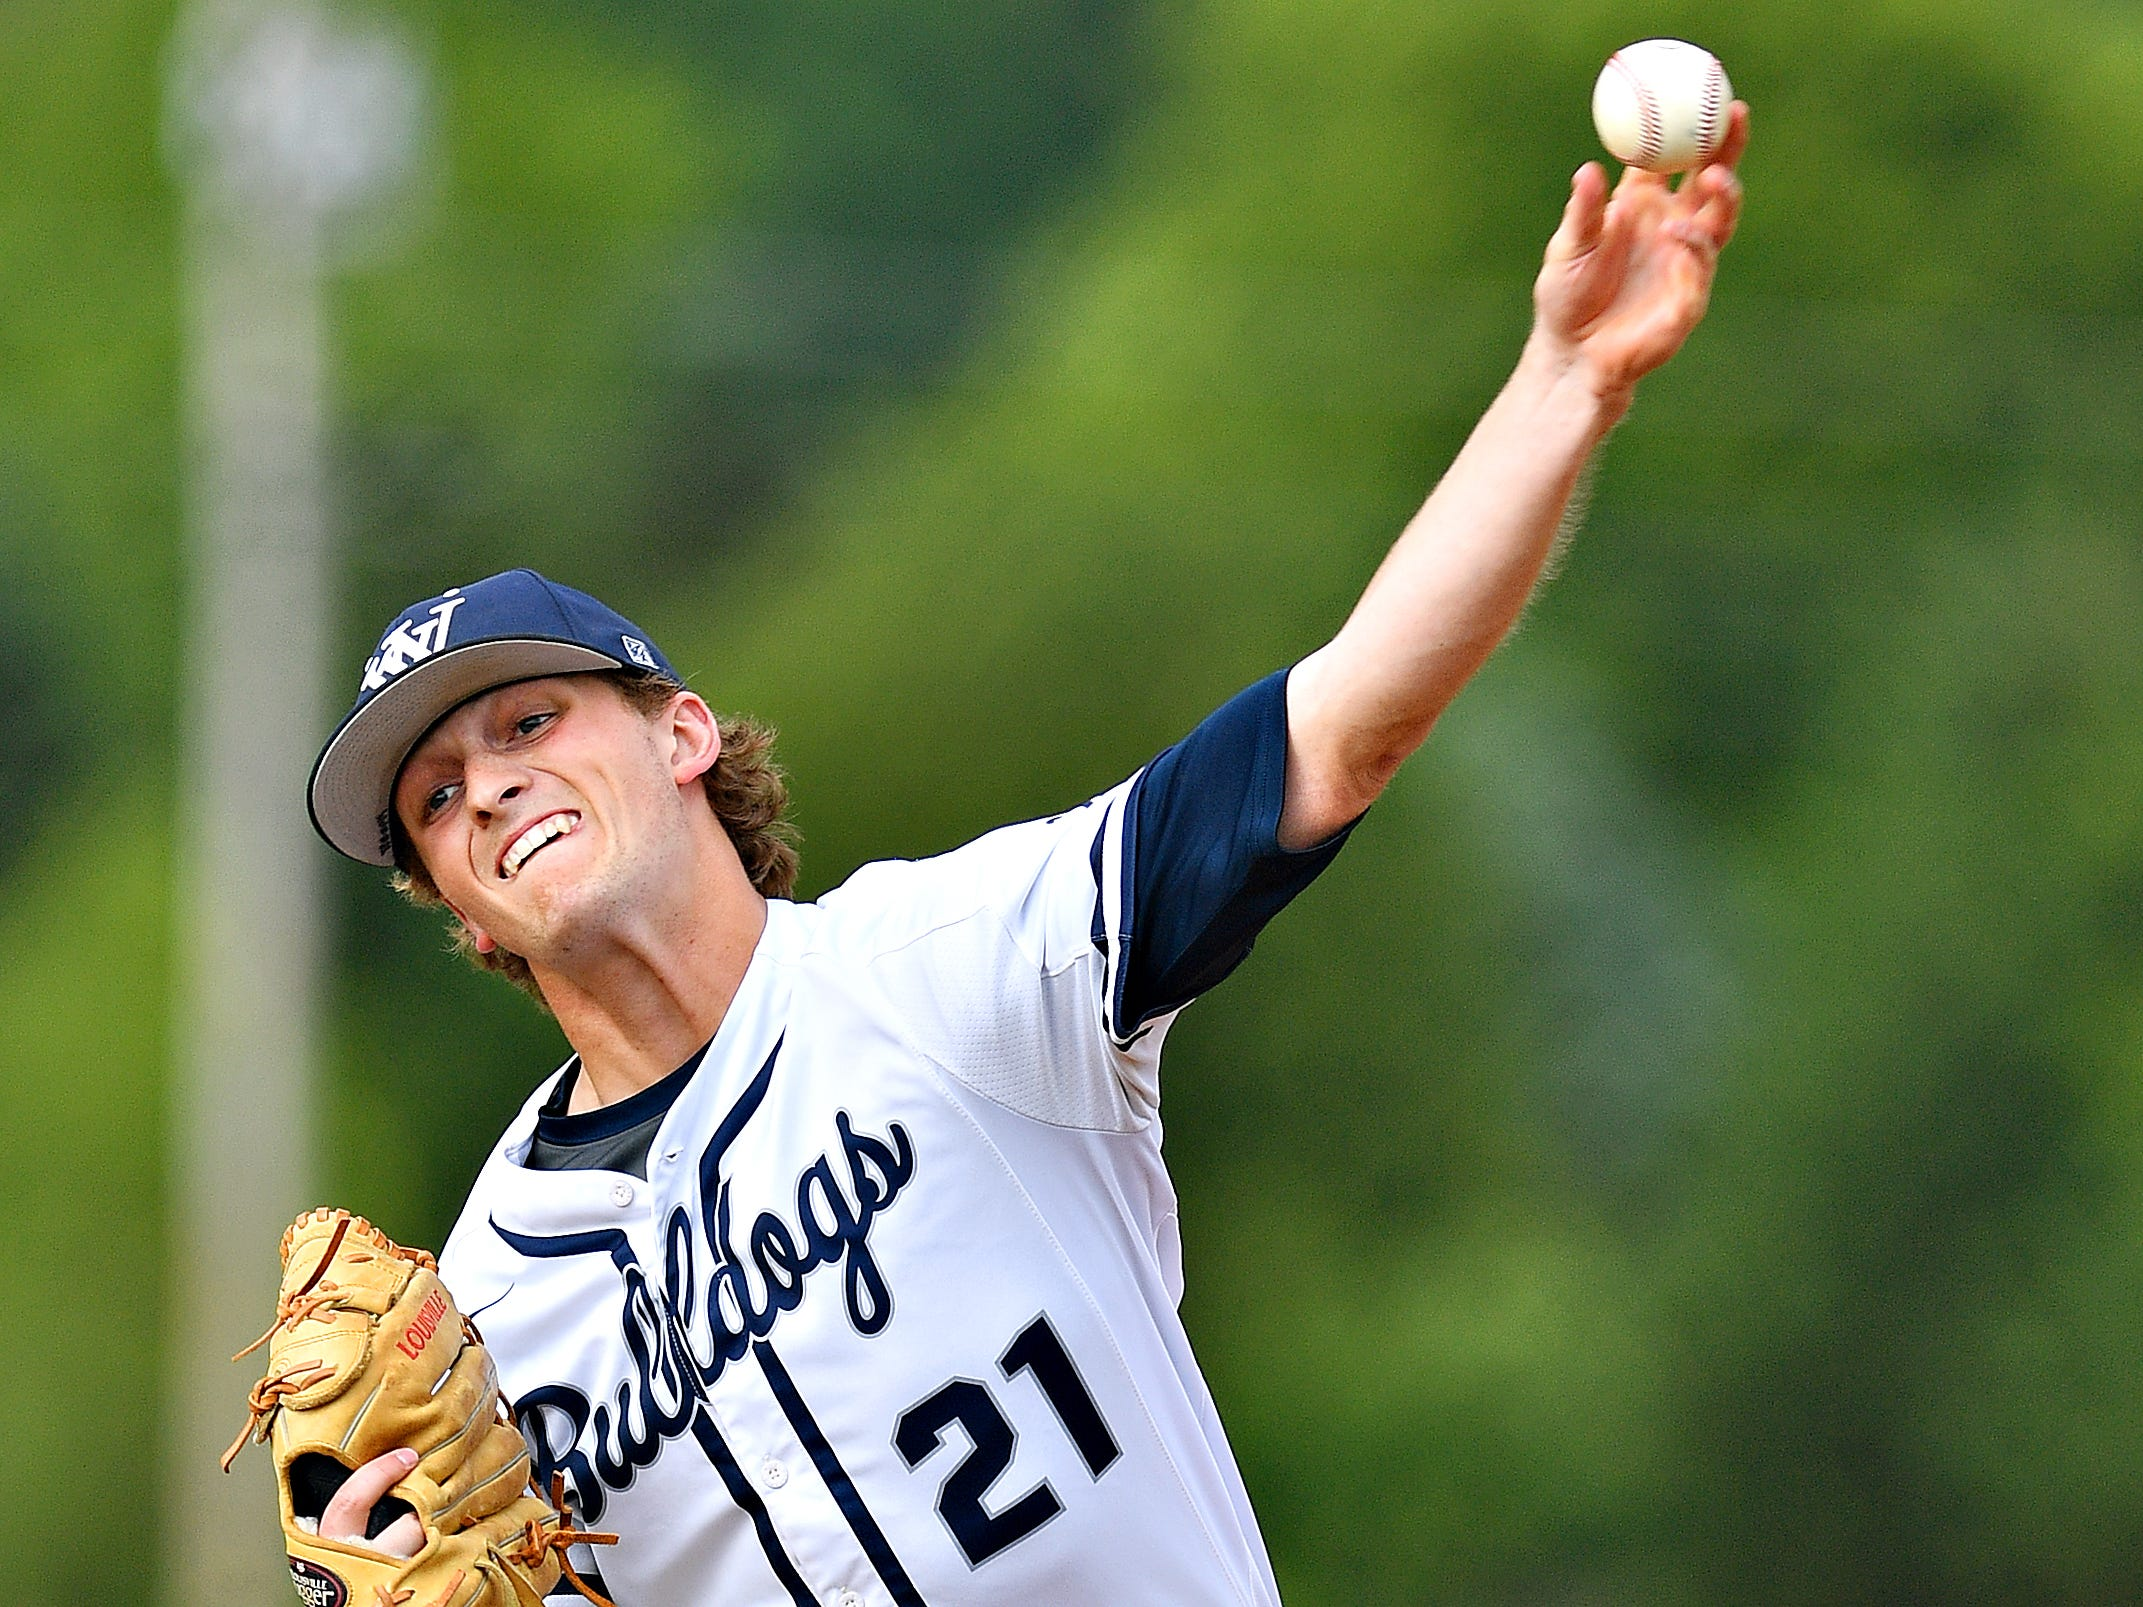 West York's Justin Wetzel pitches against Dallastown during baseball semifinal action at Spring Grove Area High School in Jackson Township, Wednesday, May 15, 2019. Dallastown would win the game 12-0. Dawn J. Sagert photo